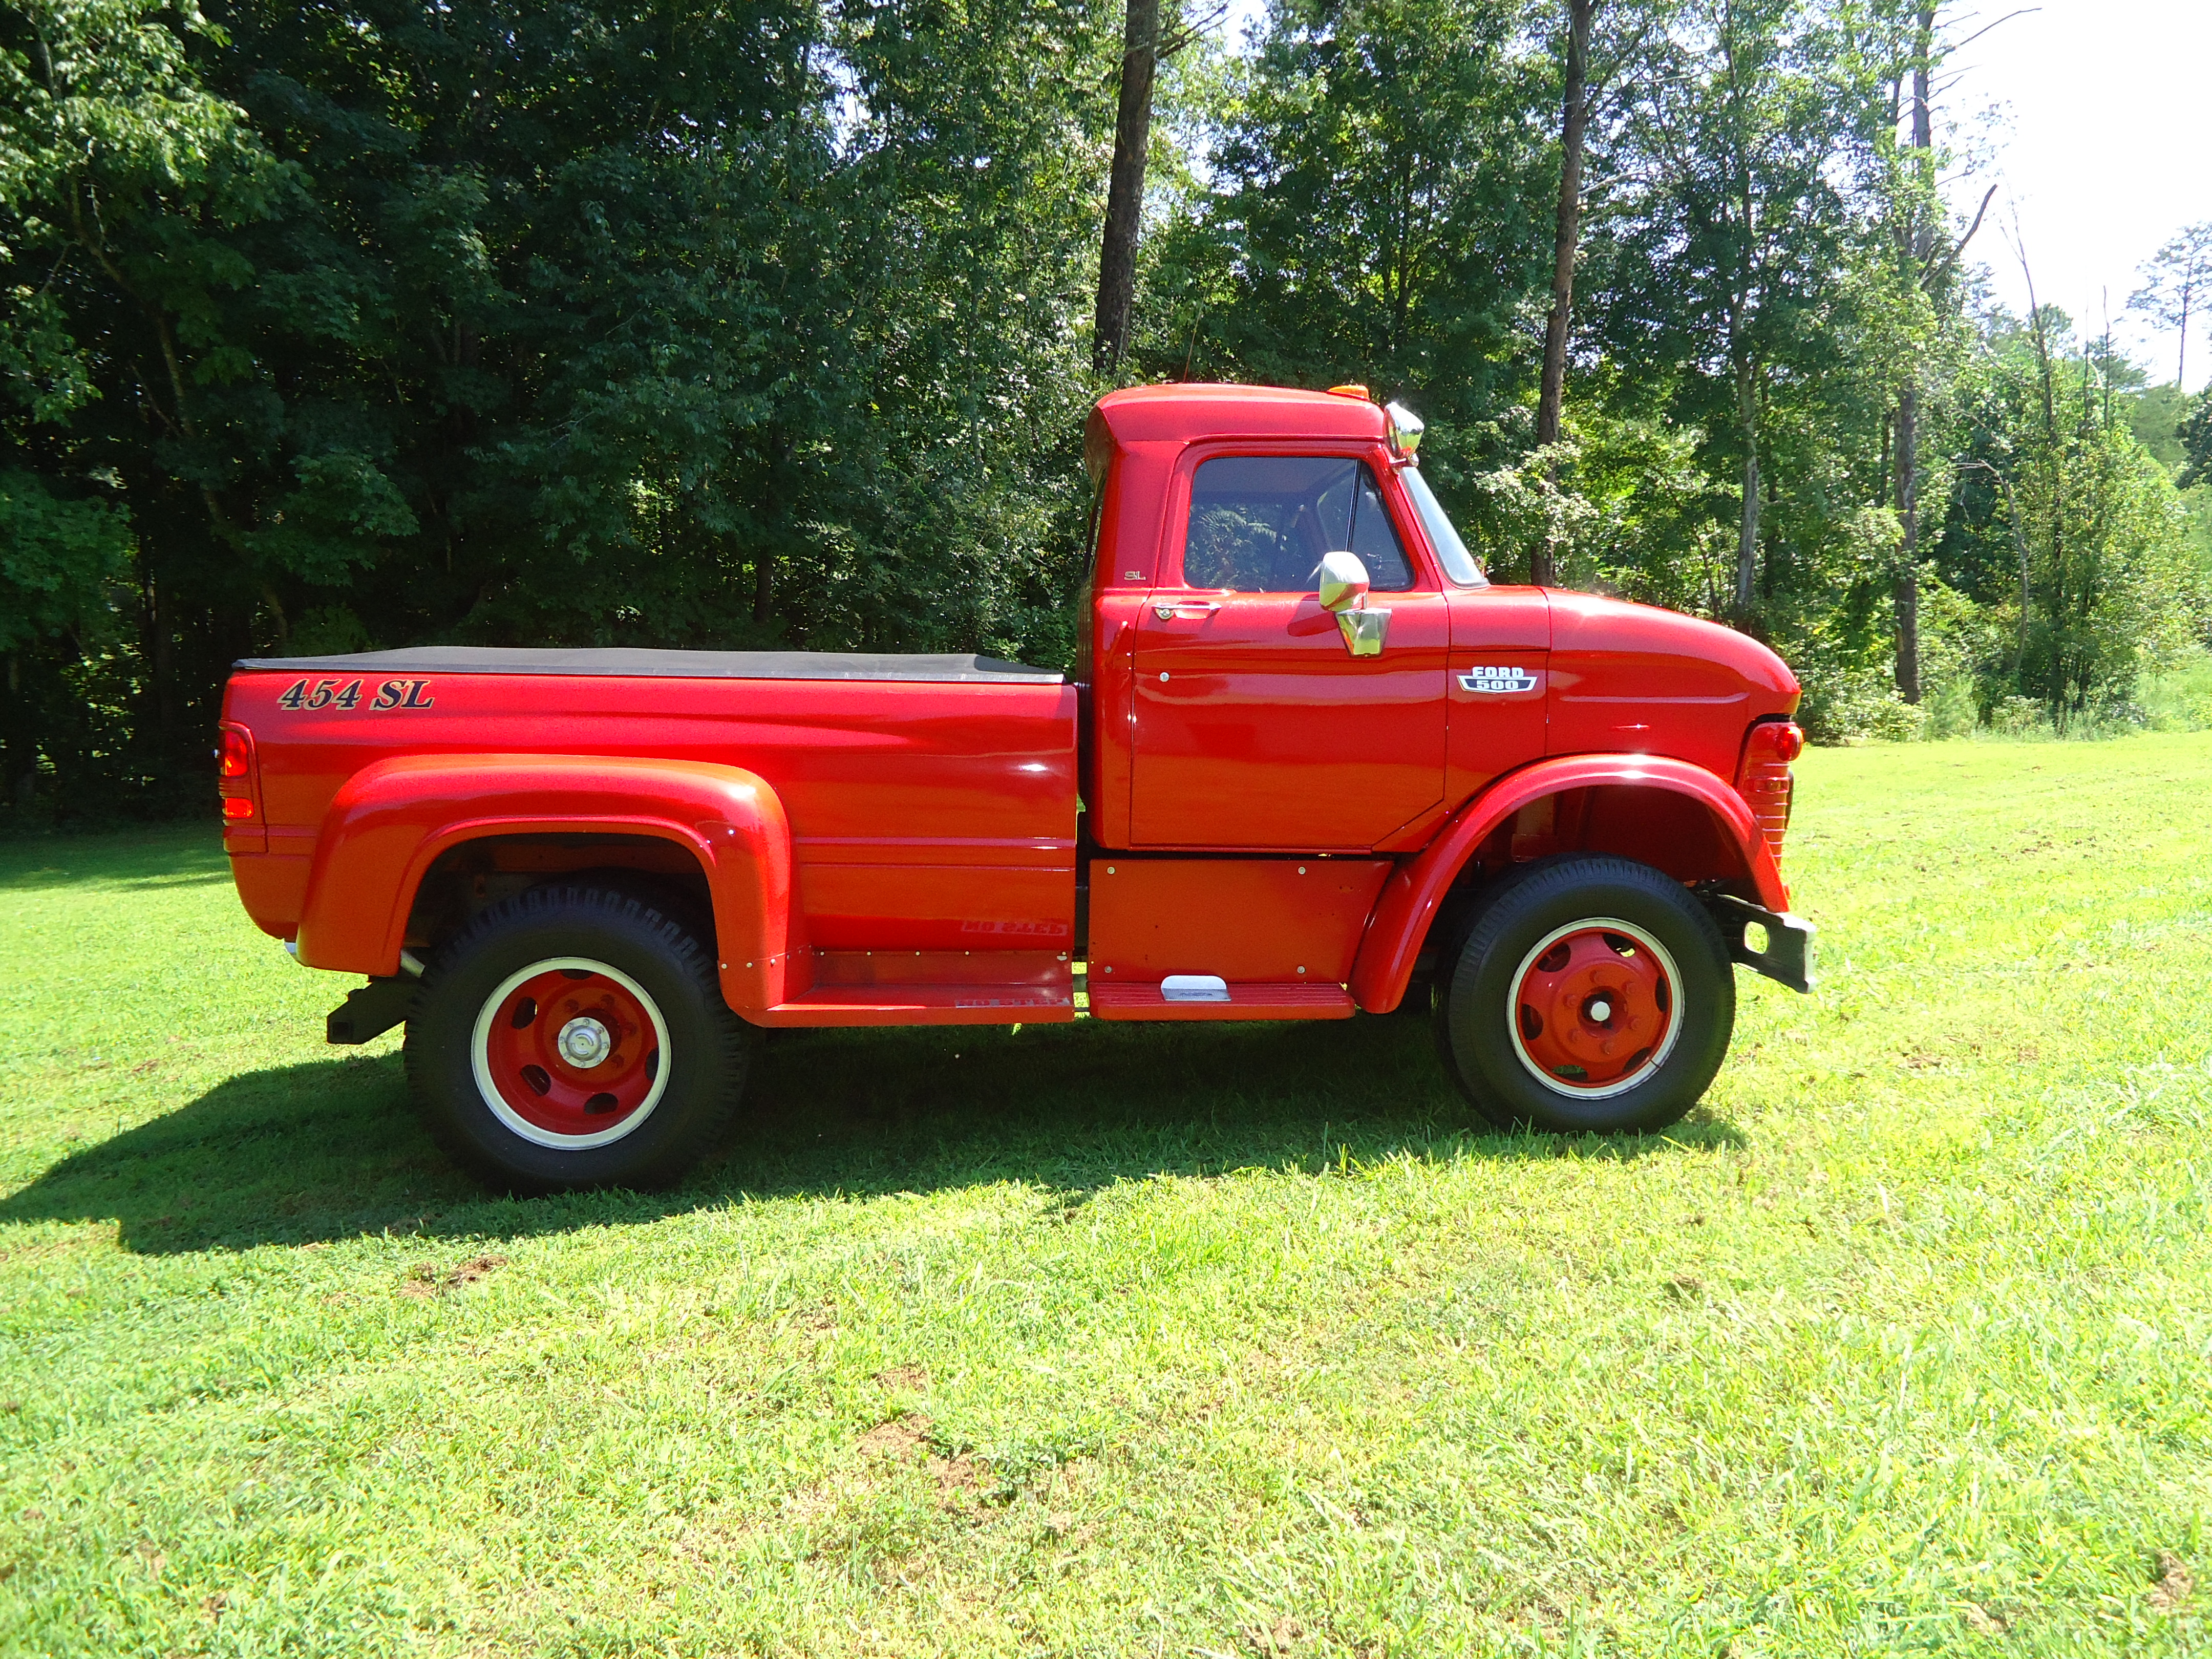 Storage Yard Classic 1963 70 Ford N Series Trucks 1961 Dump Truck